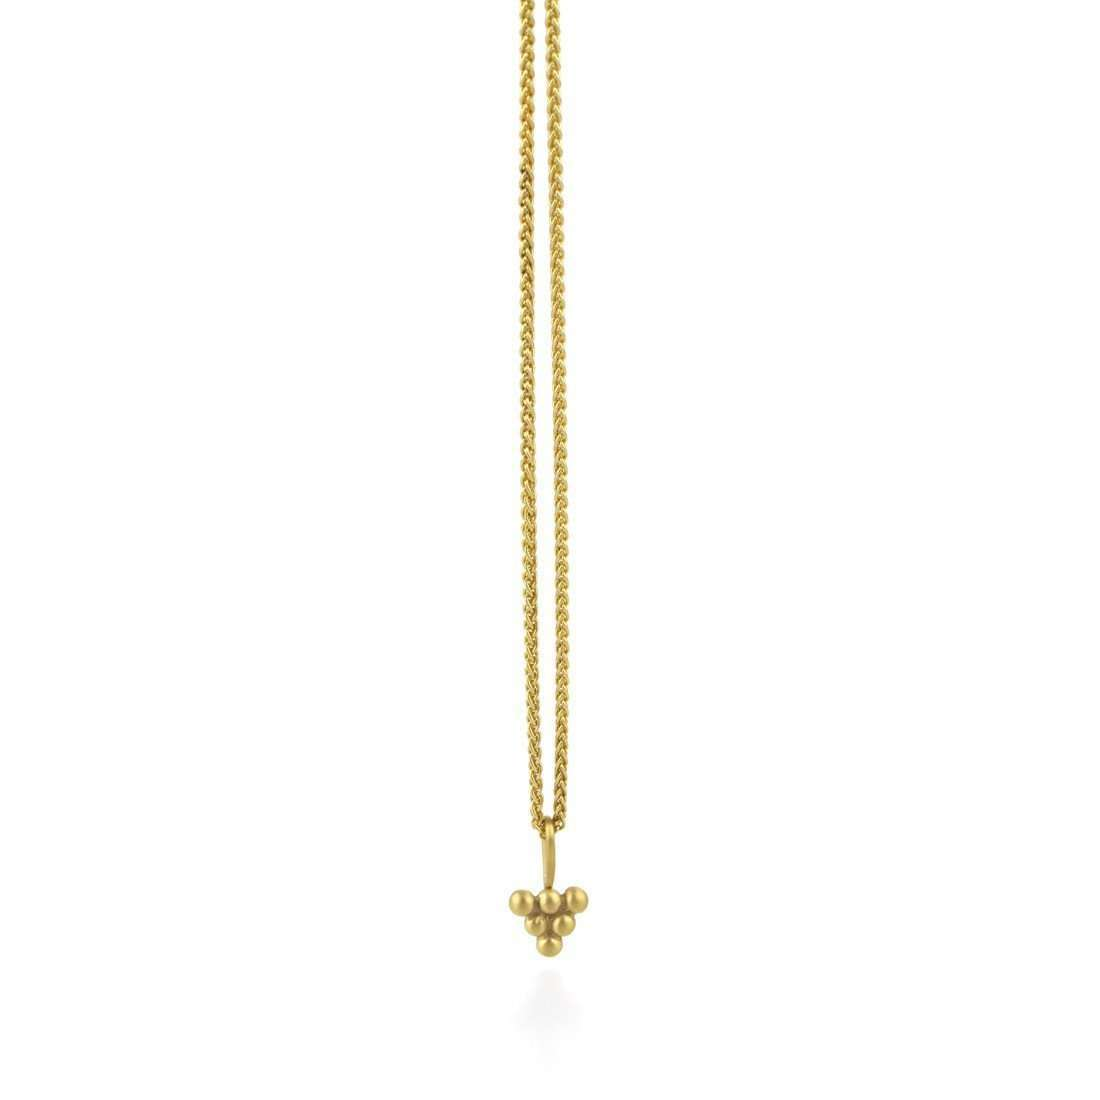 9kt Gold Sulis Small Bead Necklace-Prism Design-JewelStreet US